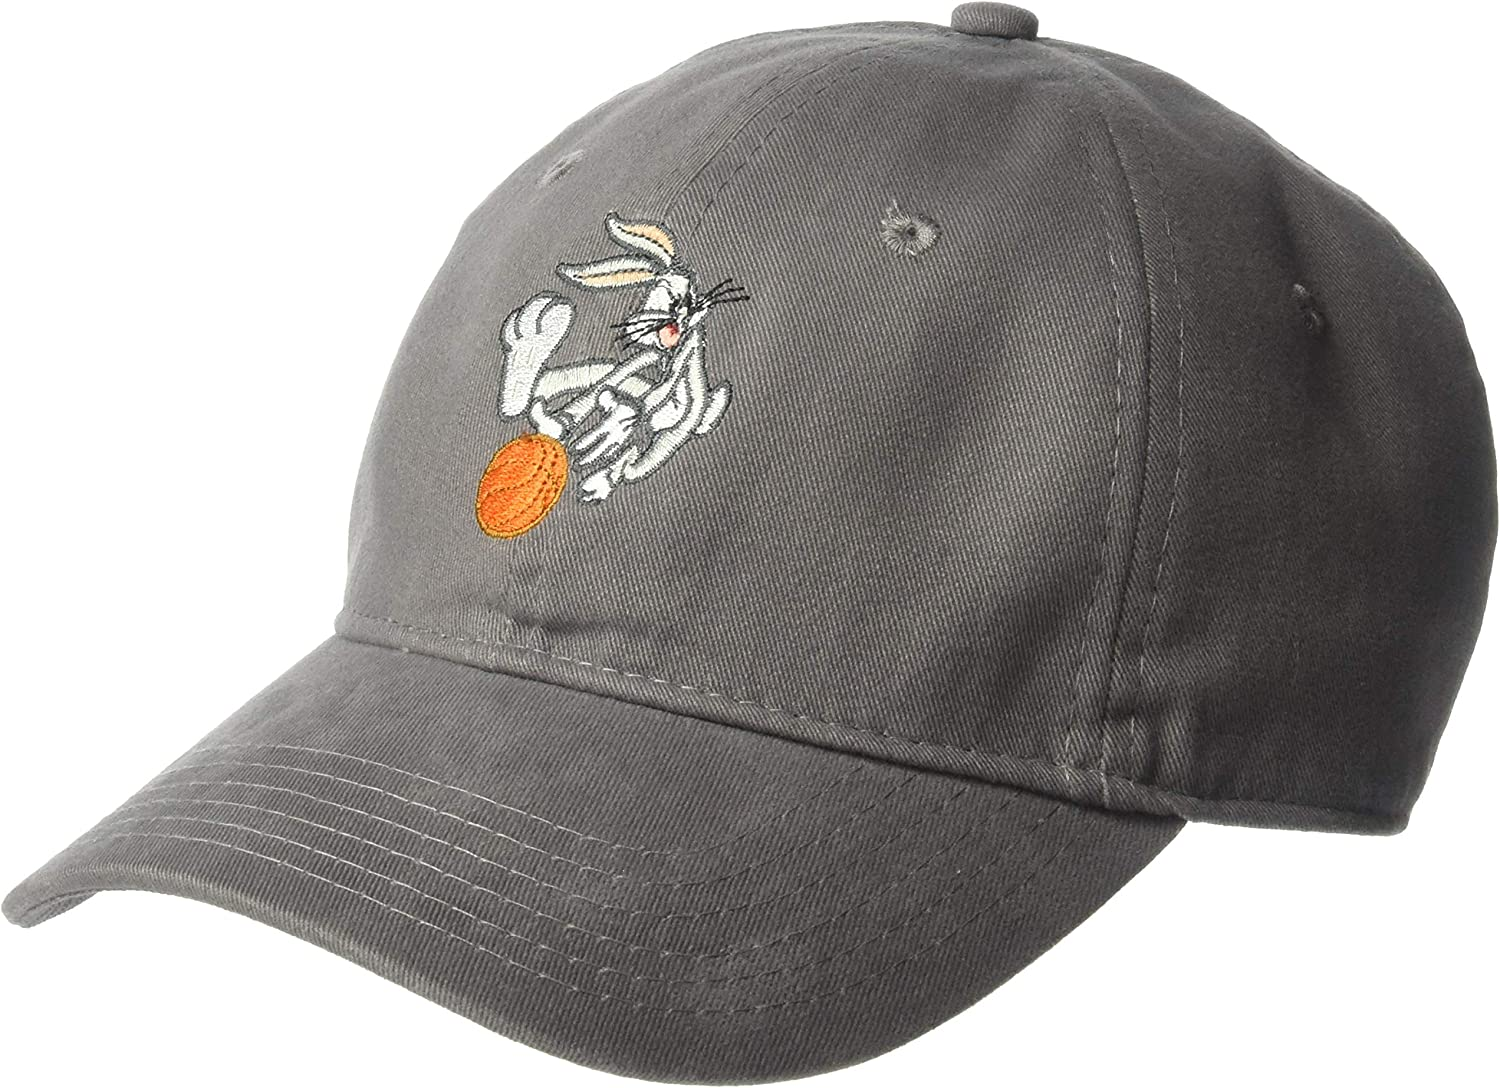 Concept One Looney Tunes Bugs Bunny Adjustable Gorra De Béisbol ...